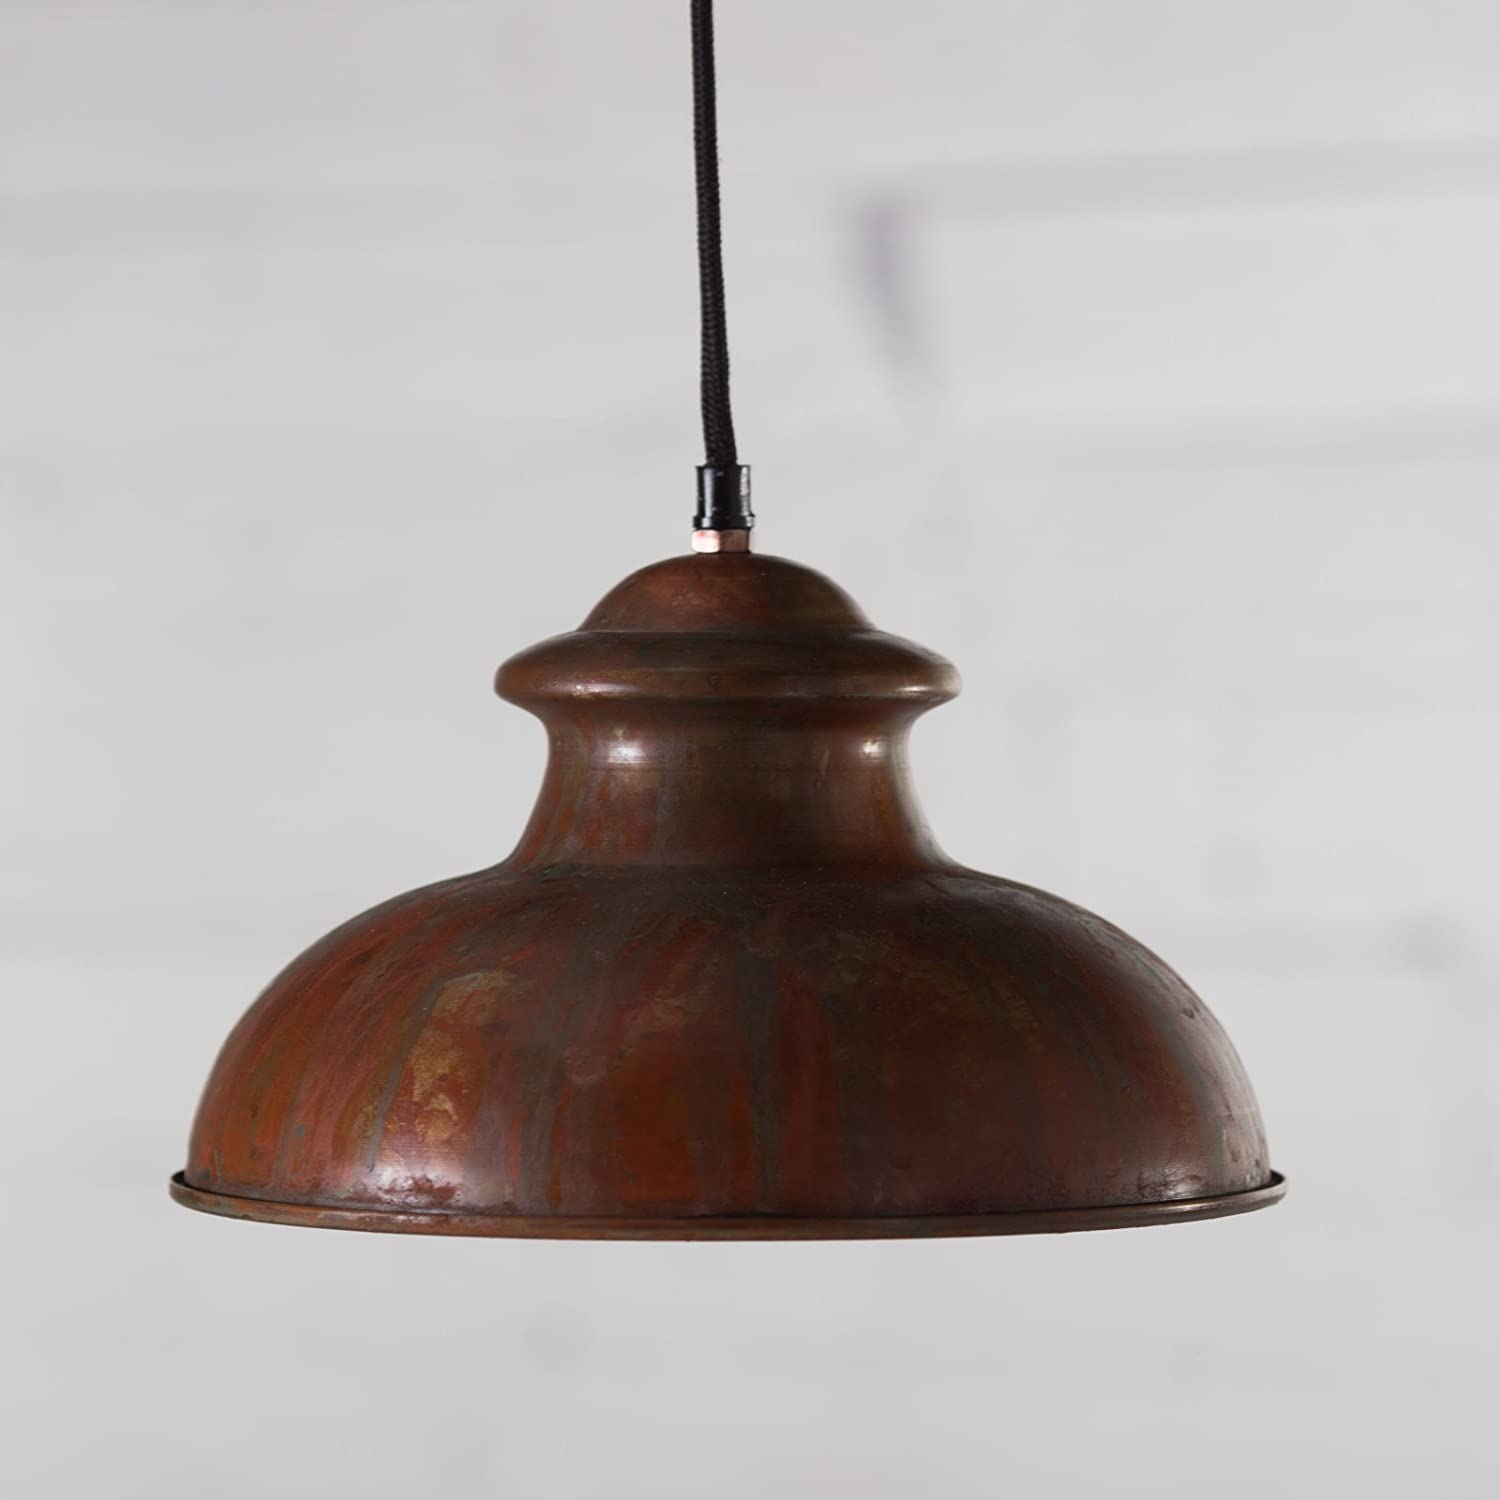 Kalalou Pendant No. 8 - Antique Rustic, Copper, 10L x 10W x 6H ...